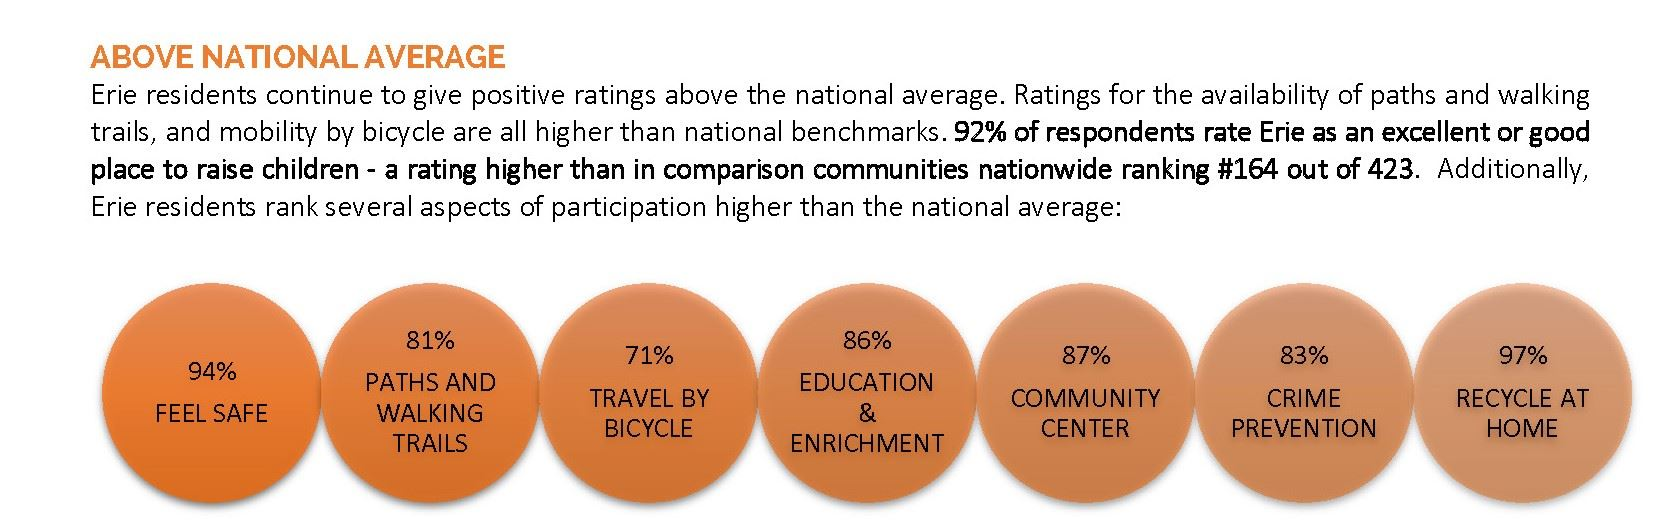 Above National Average Graphic